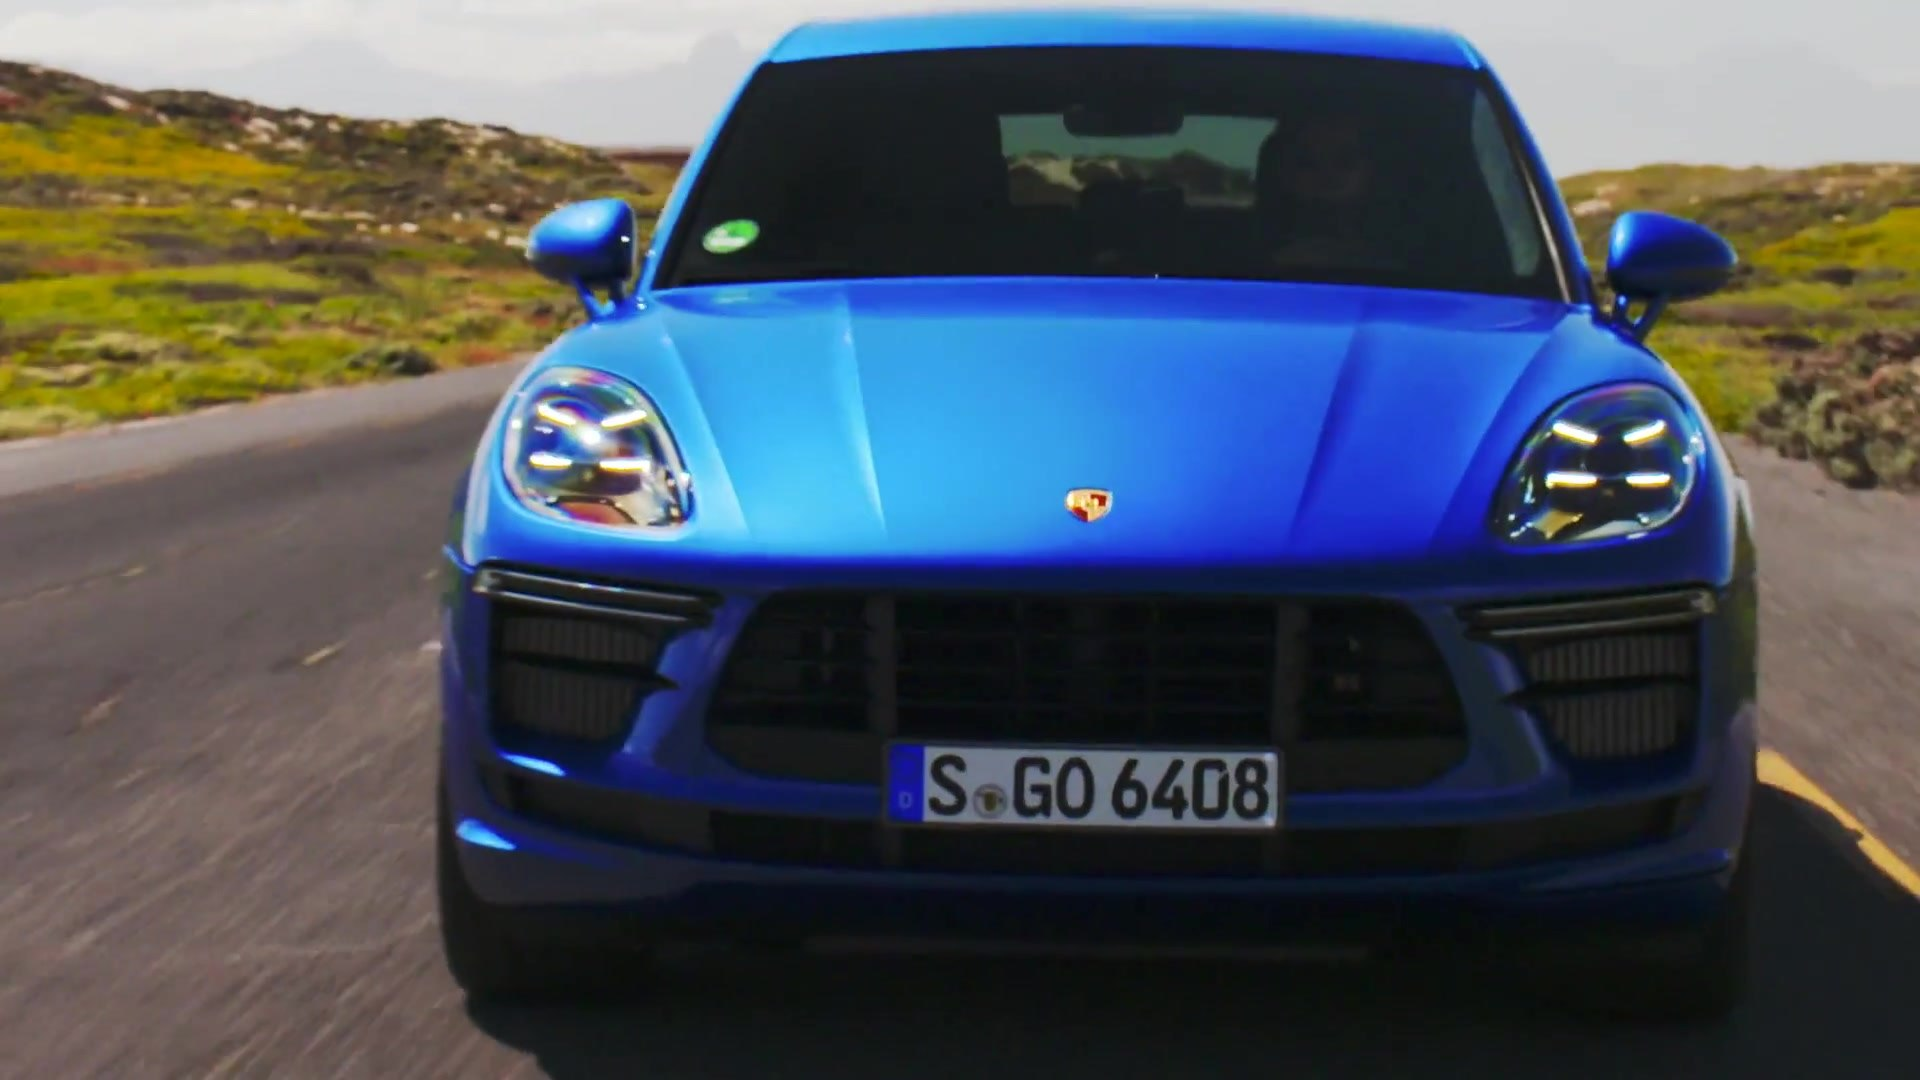 Porsche Macan Turbo In Sapphire Blue Metallic Driving Video Video Dailymotion